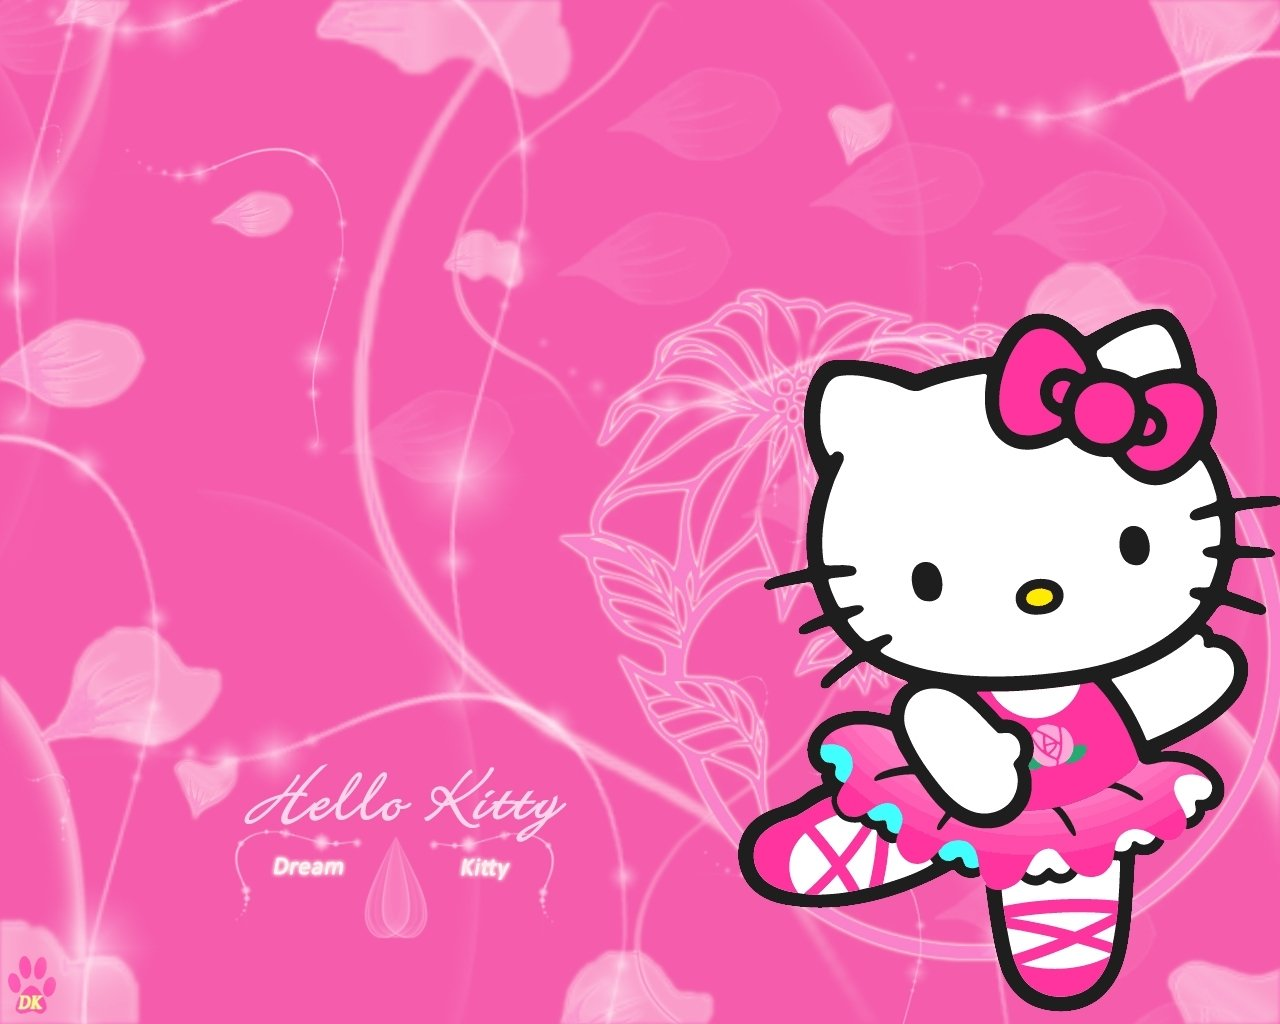 Car Wallpaper Hd 1080p Free Download For Mobile Download Hello Kitty Pink Wallpaper Gallery